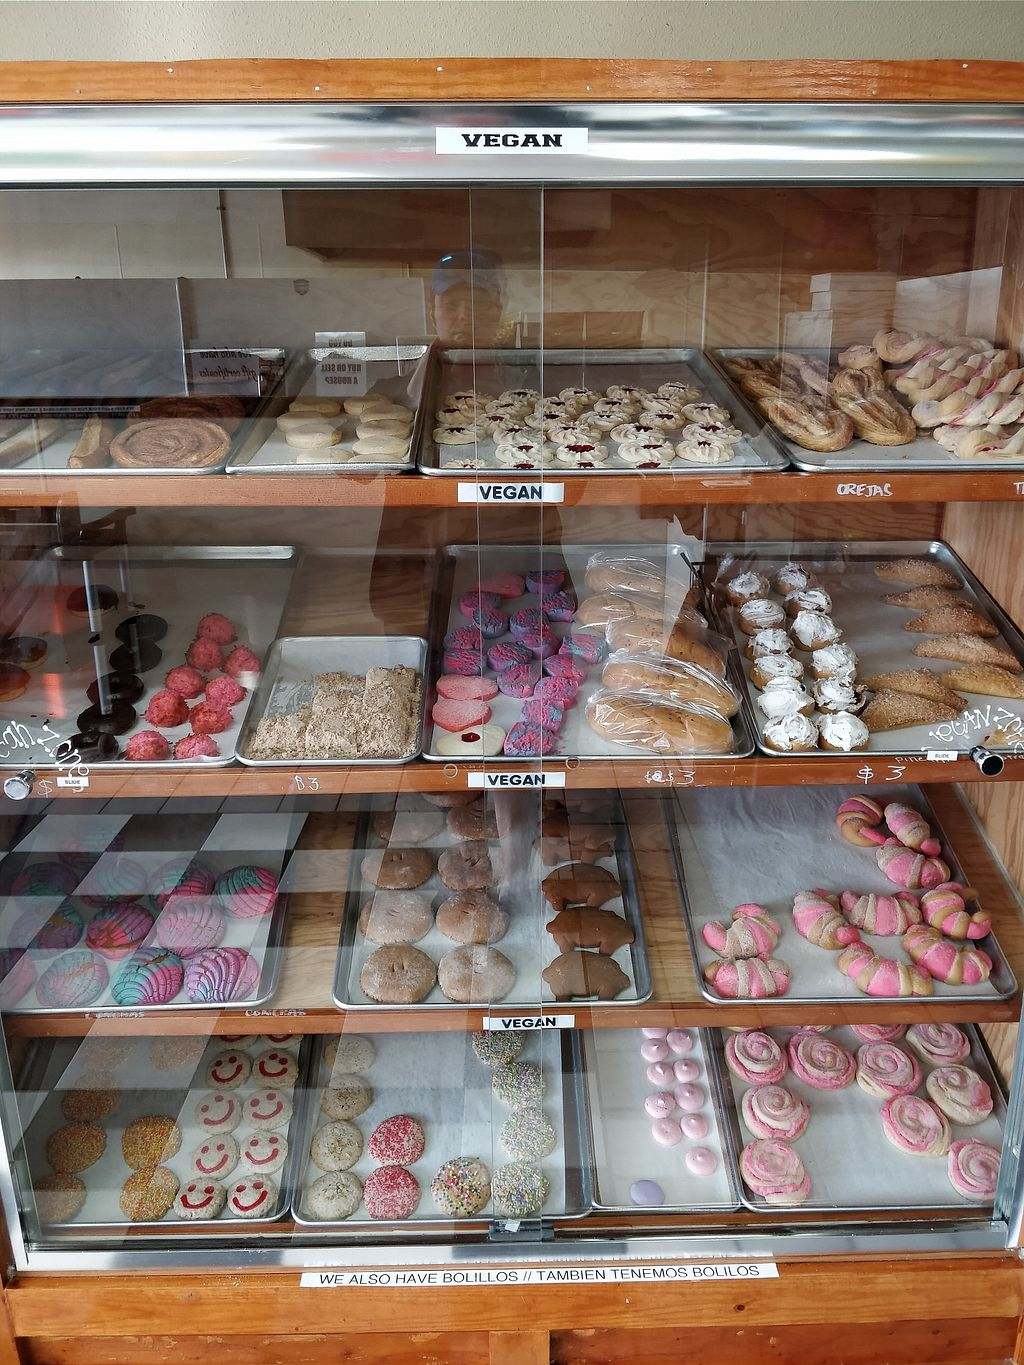 """Photo of  Panaderia Cafe Oaxaca  by <a href=""""/members/profile/SethCNelson"""">SethCNelson</a> <br/>Entire display case of vegan treats! <br/> February 11, 2018  - <a href='/contact/abuse/image/111740/357633'>Report</a>"""